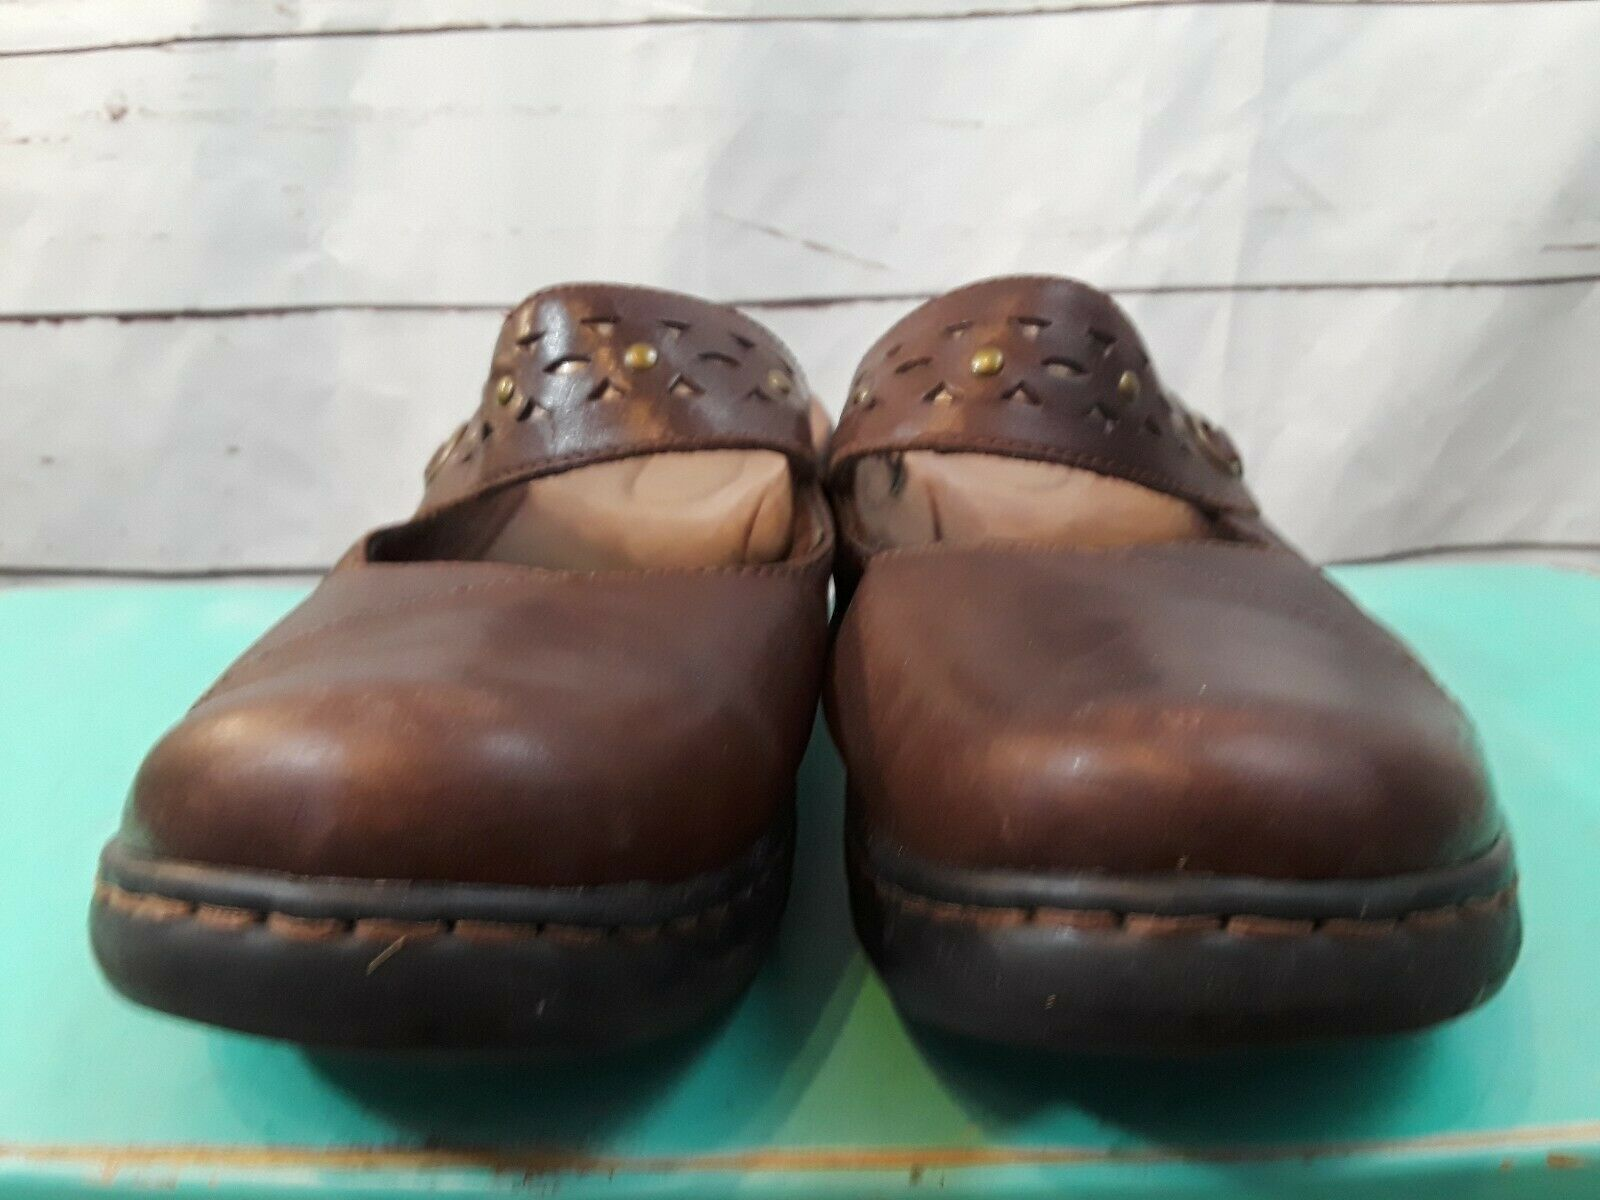 CLARKS  Women's Leather Brown Slip On Mules Mary Jane Shoes SZ 7.5